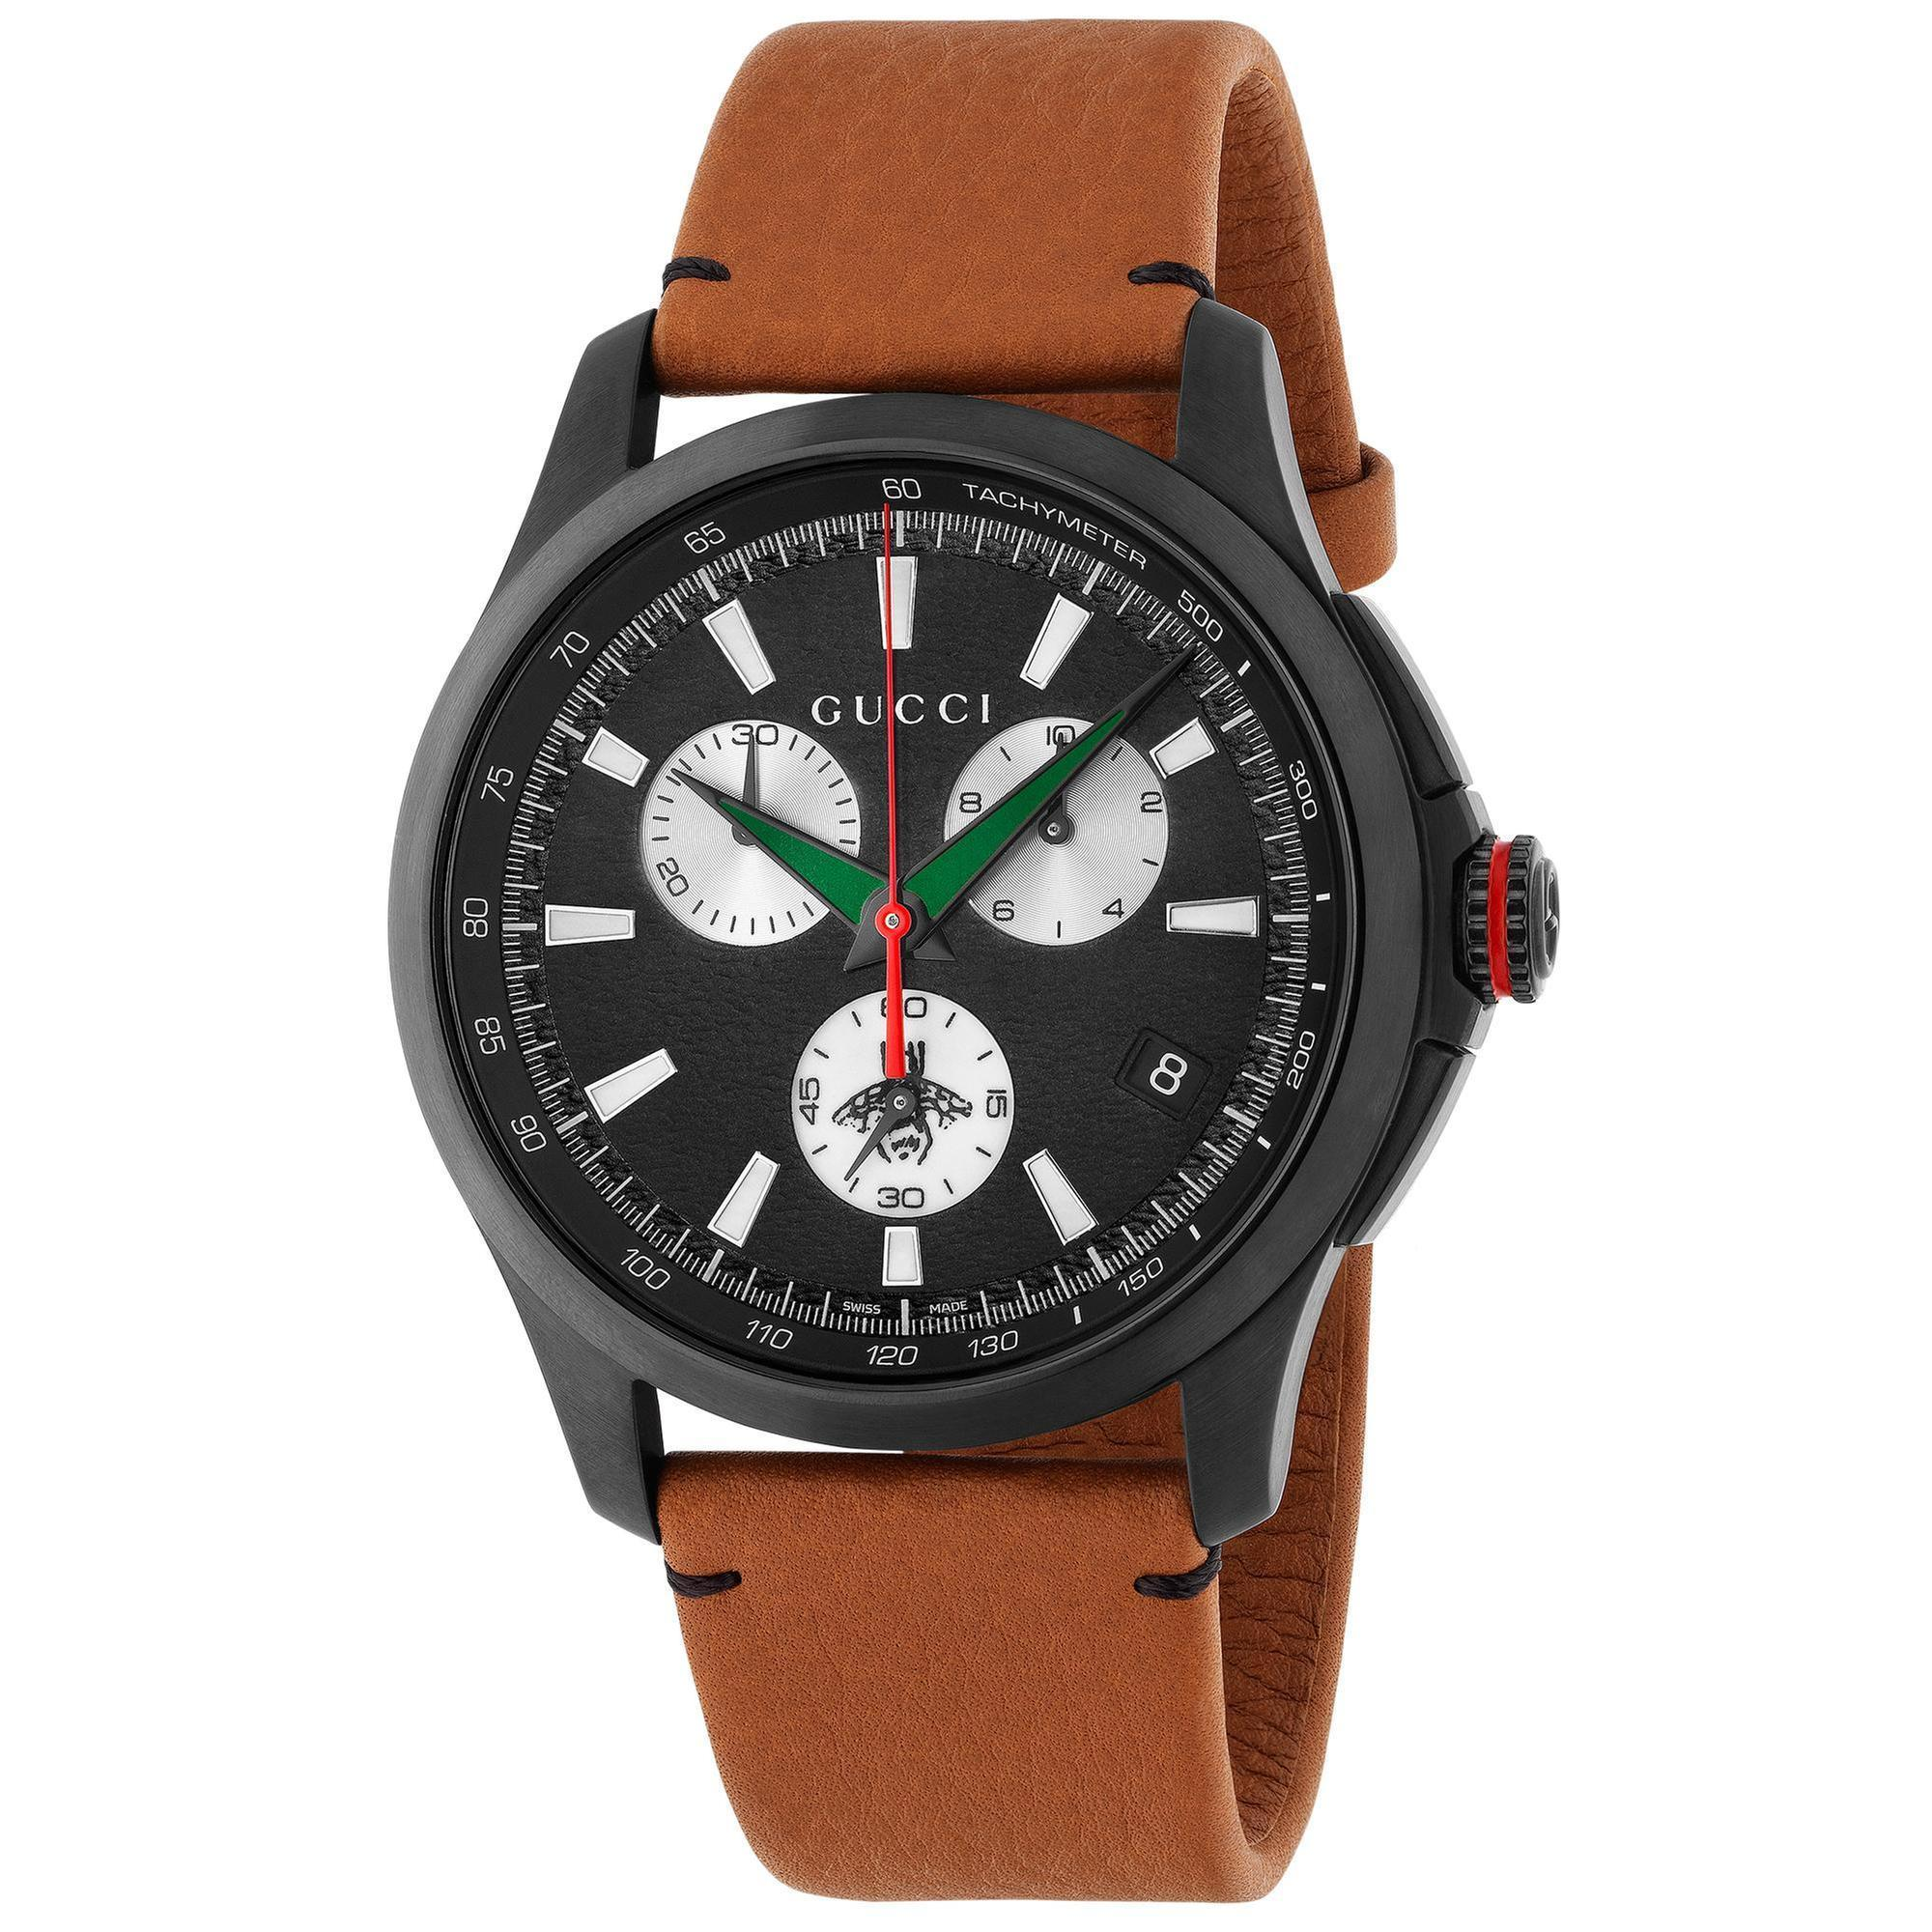 230eb13e1cb Shop Gucci Men s YA126271  G-Timeless Extra Large Bee  Chronograph Brown  Leather Watch - Free Shipping Today - Overstock - 14707209